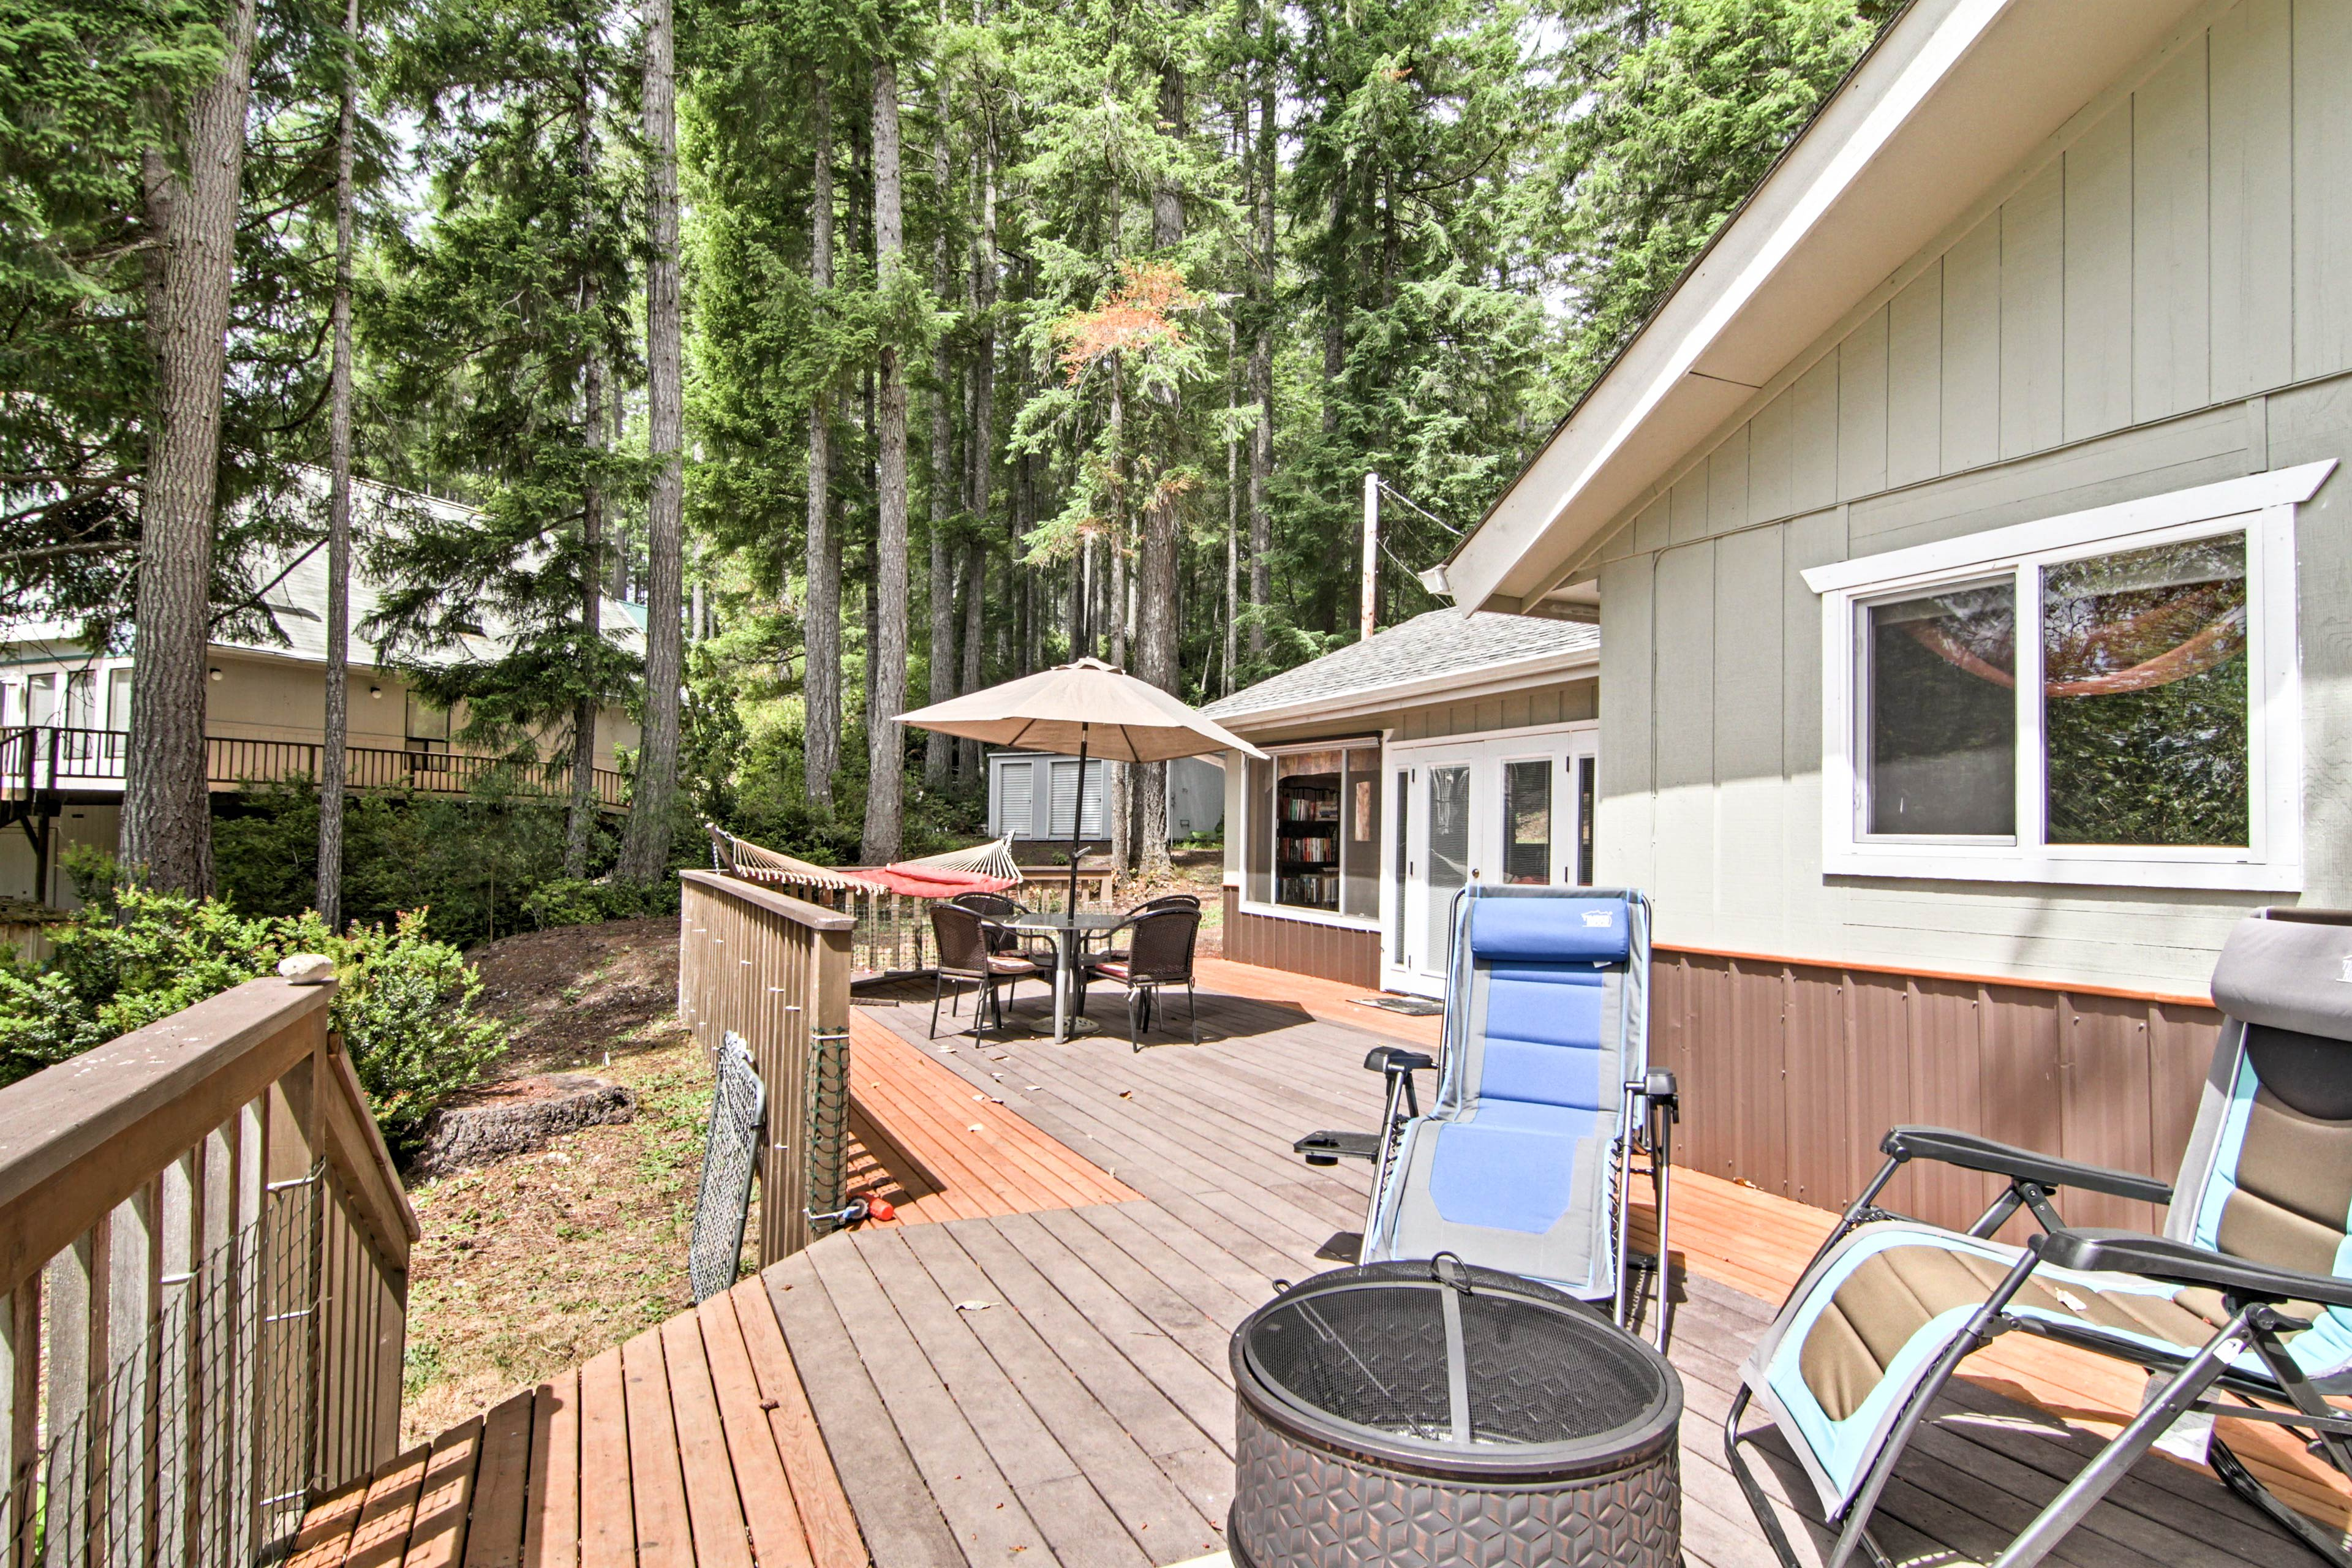 The spacious deck is an ideal spot to relax and unwind day or night.